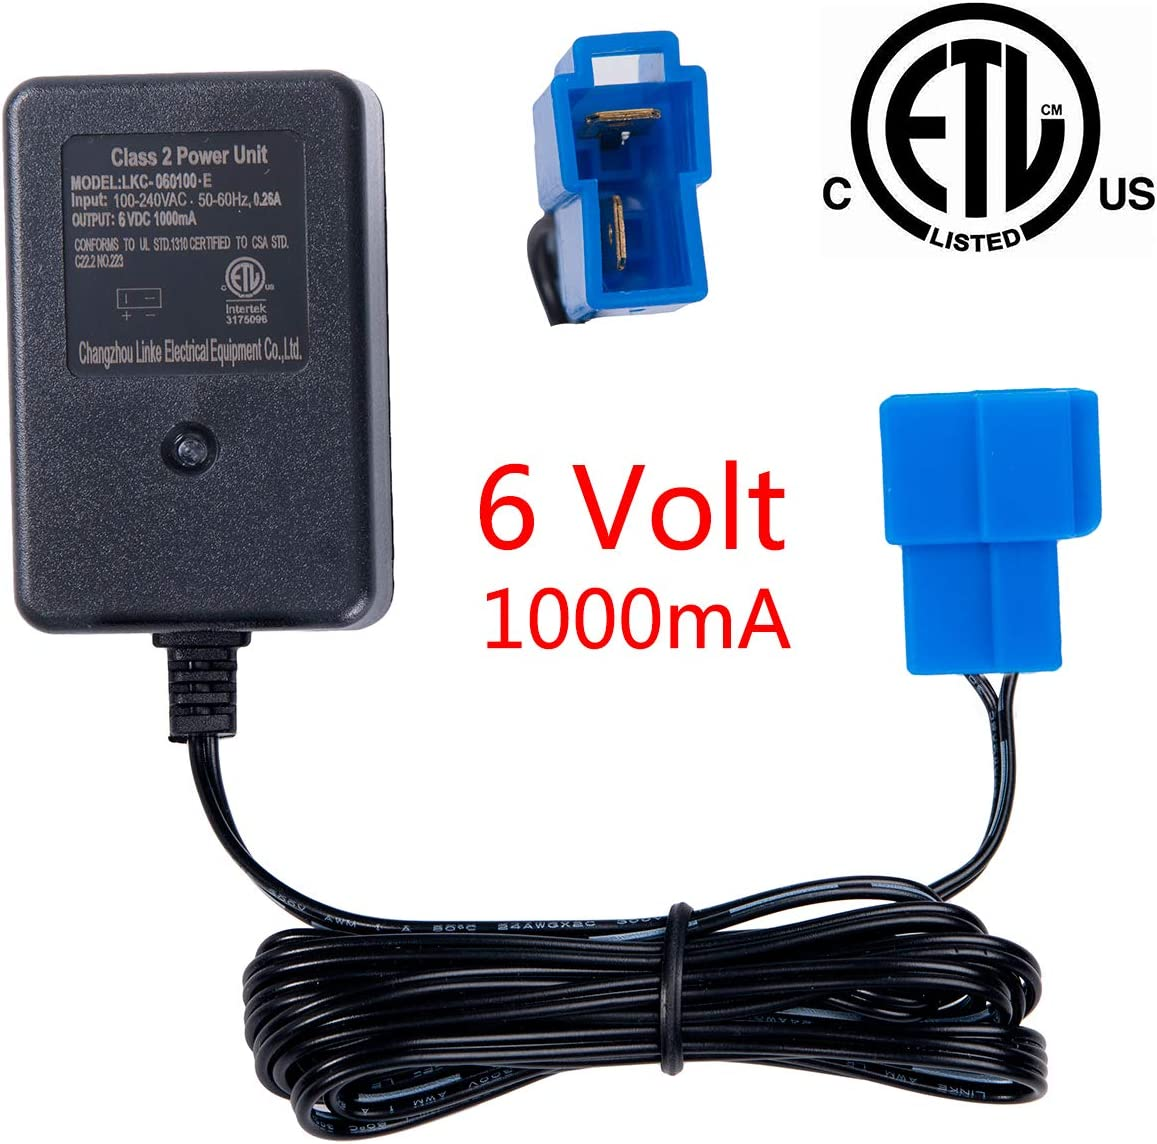 6V Charger for BMW x6 KID TRAX ATV Quad Car 6V battery Powered ride on car